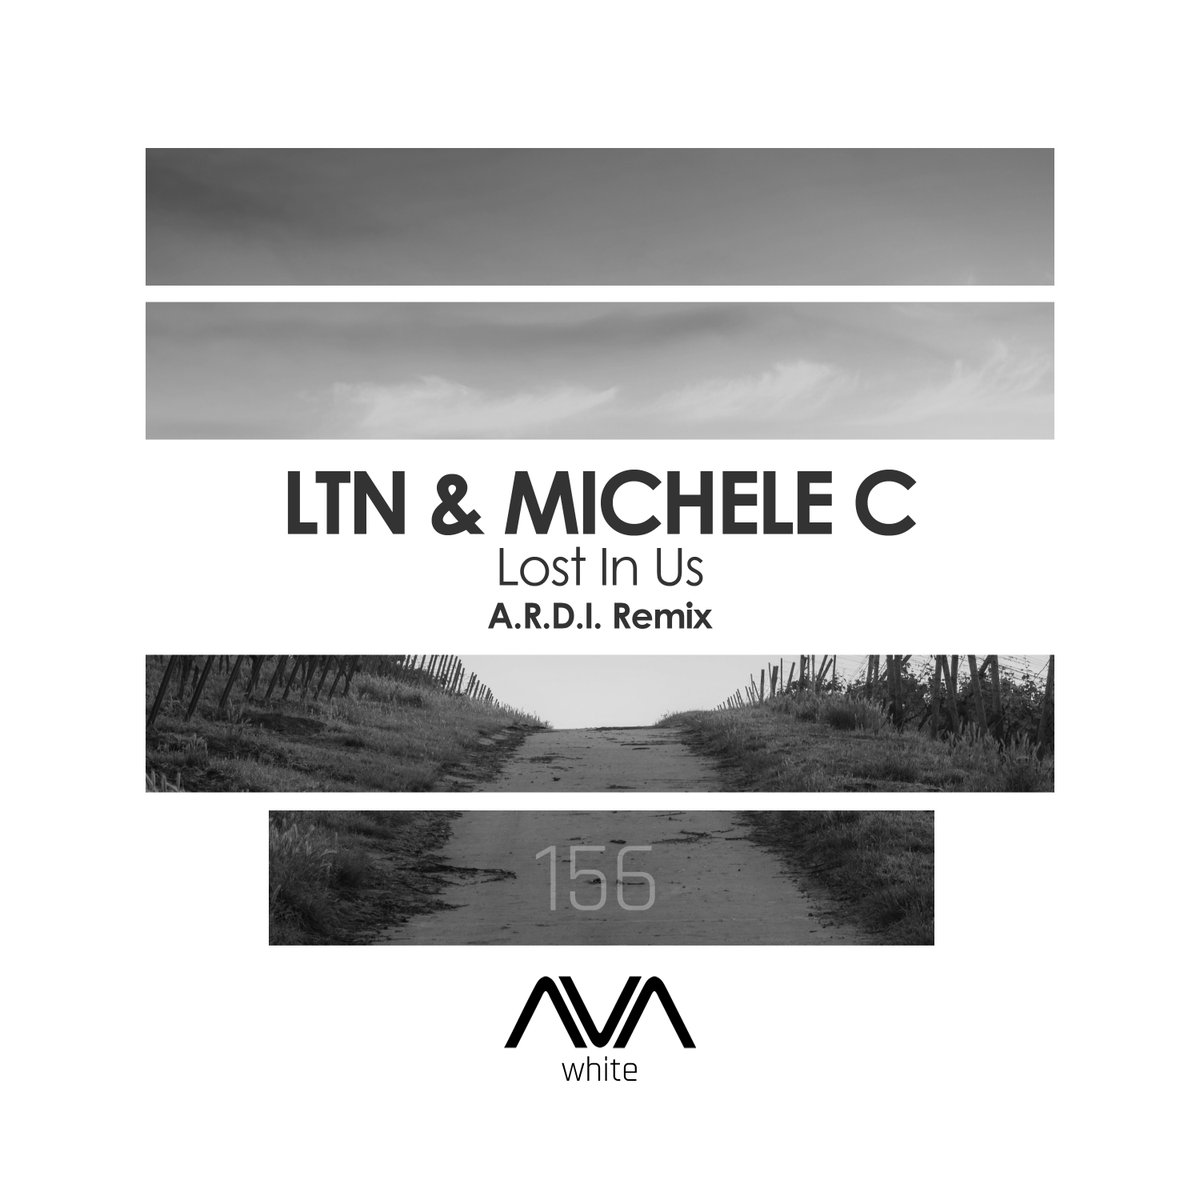 My new remix is out now ! :)  @Louis_Tan_LTN & Michele C - Lost In Us ( A.R.D.I. Remix) AVA White  #trancefamily #138bpm #vocaltrance #uplifting #tranceproducer  ---------------------------------------------------------------------------- Buy/Download ---> https://t.co/m3Yzsj353g https://t.co/zcv68Dgkz0